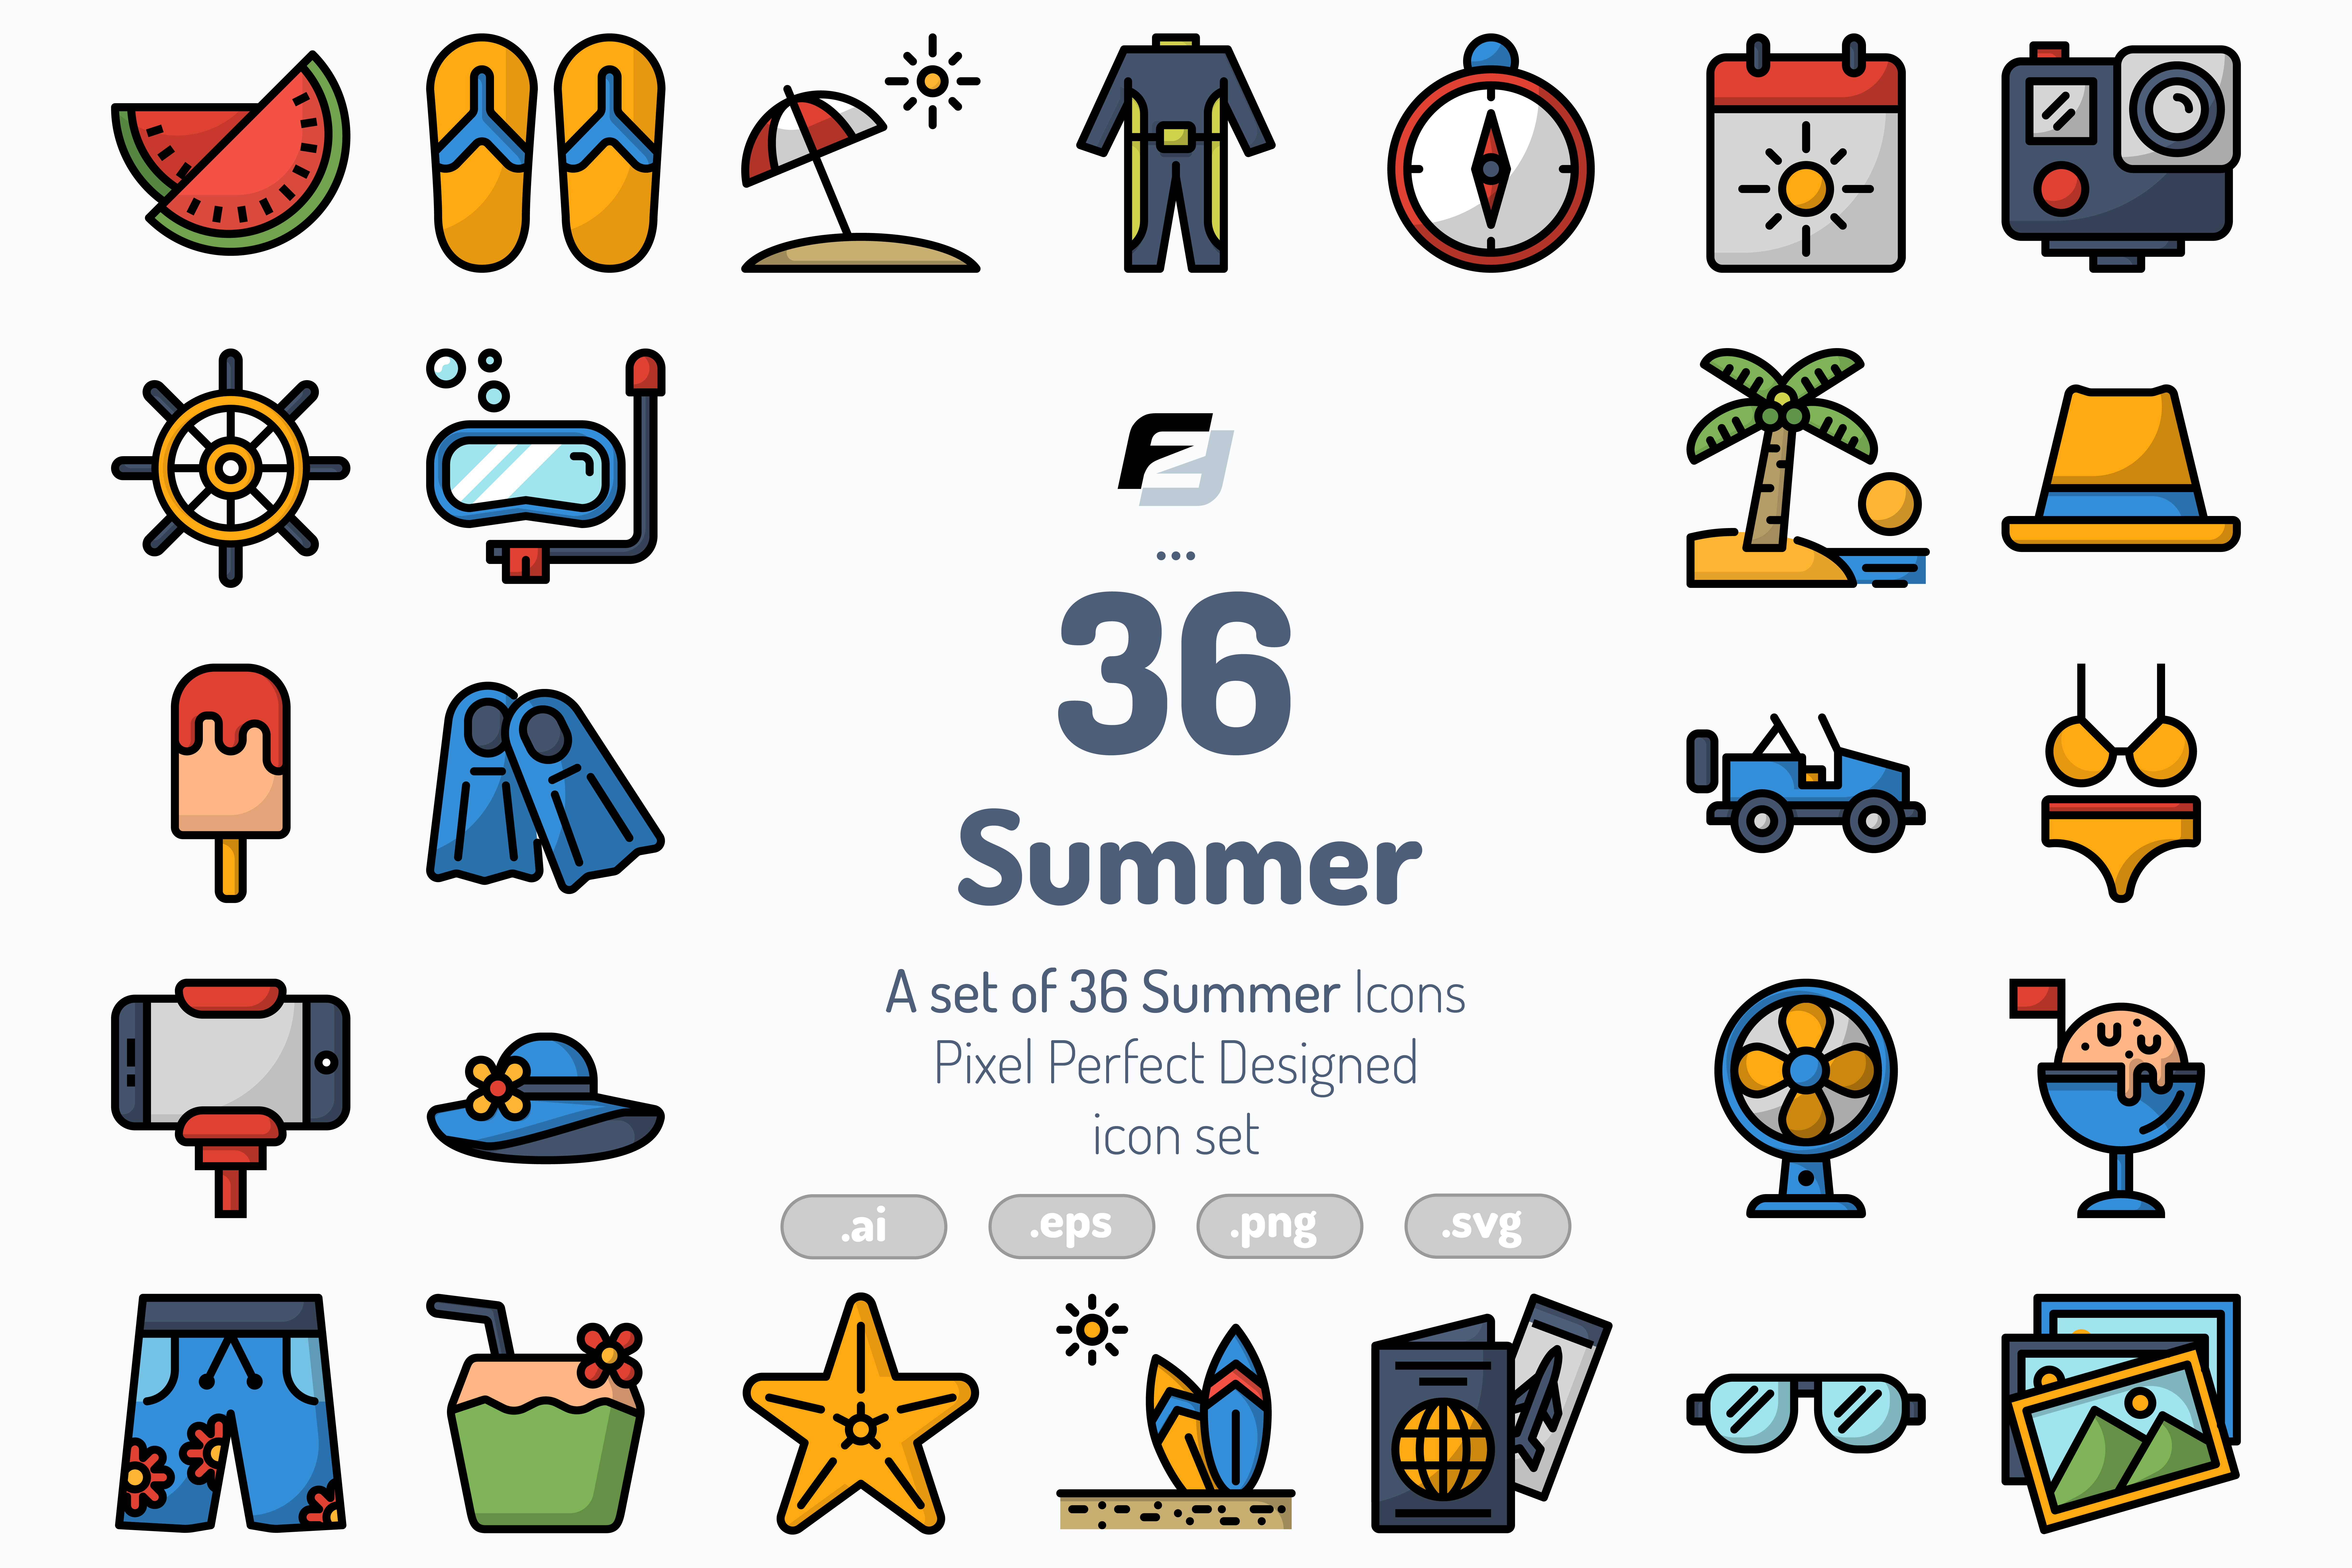 36 Summer Icons - Preview 01 1 -